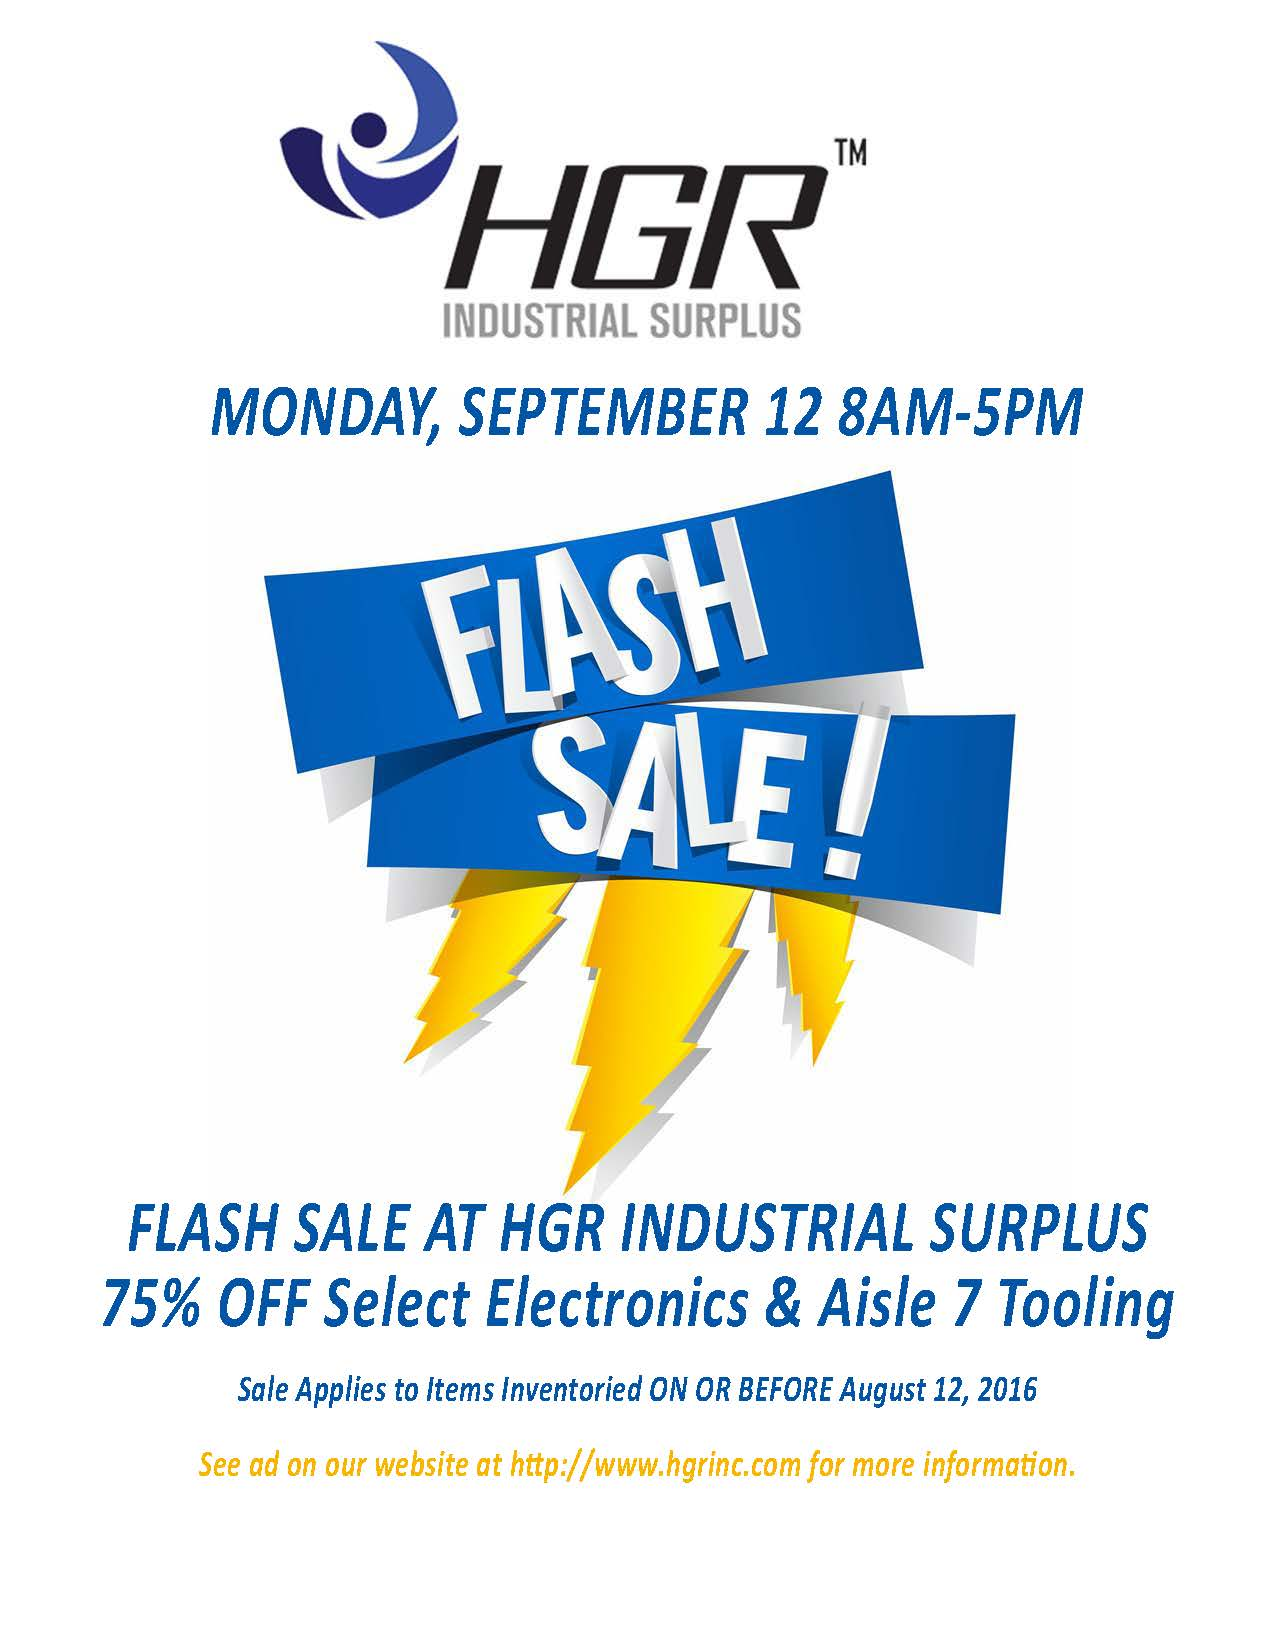 HGR Industrial Surplus flash sale flyer for Sept. 12